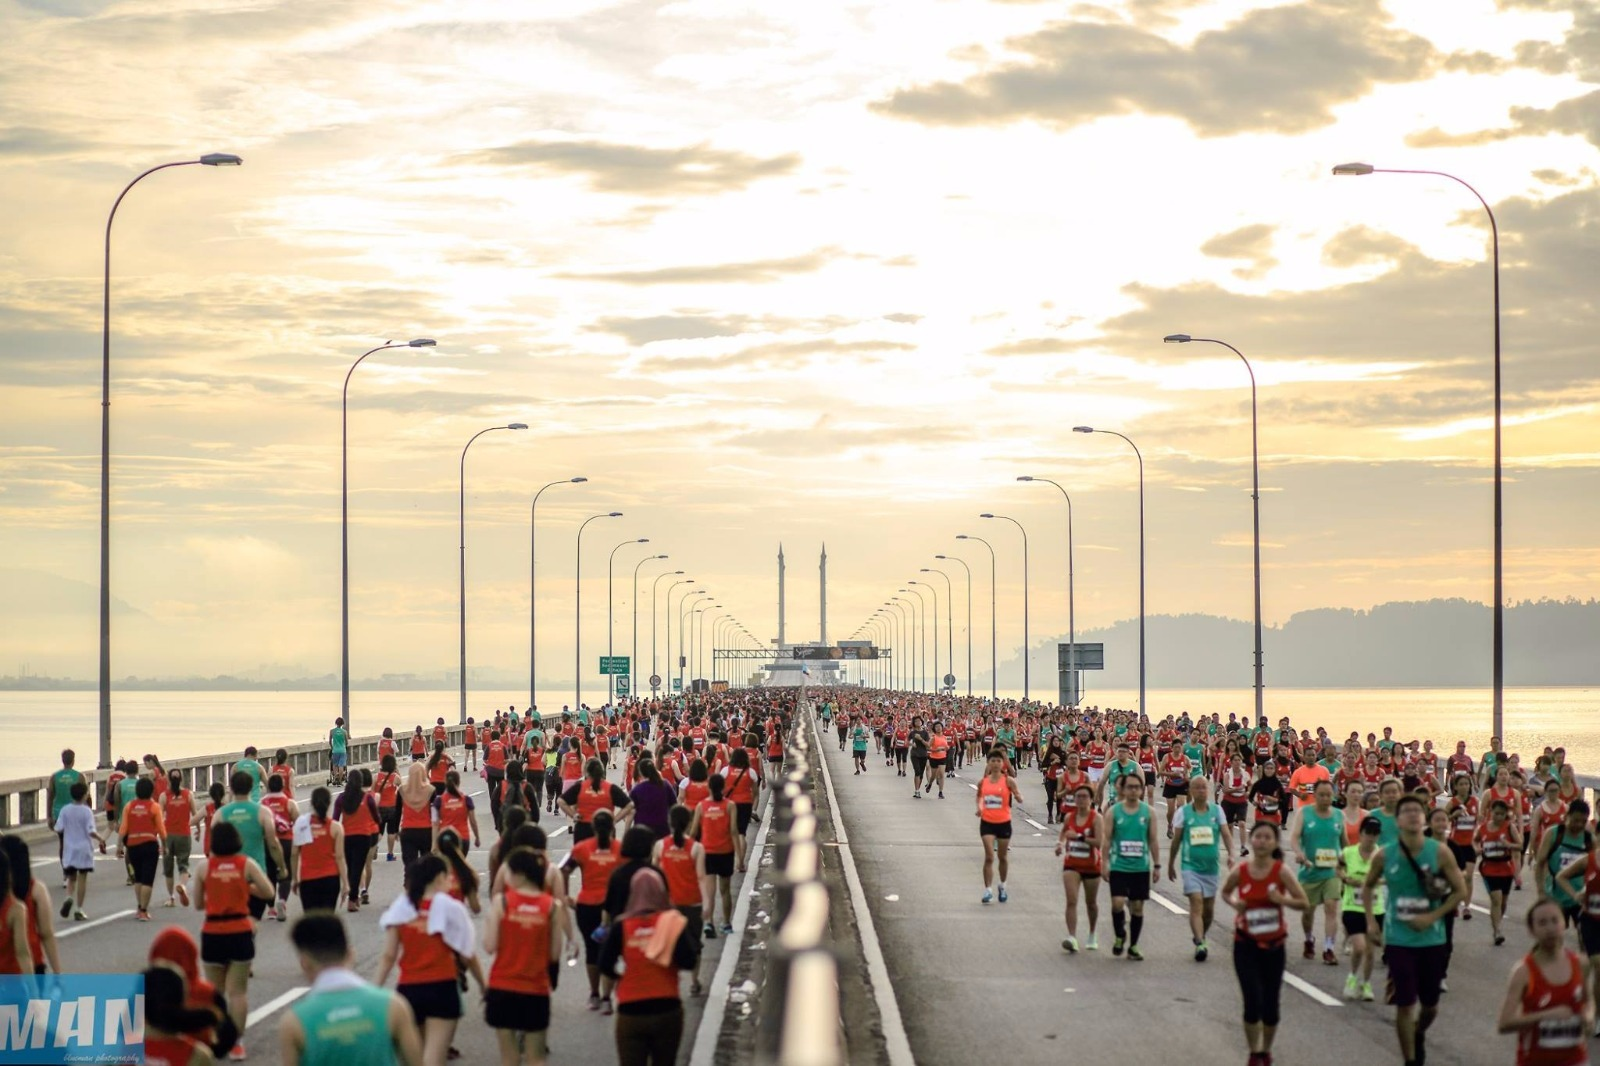 Photo Credit: Asics Penang Bridge International Marathon